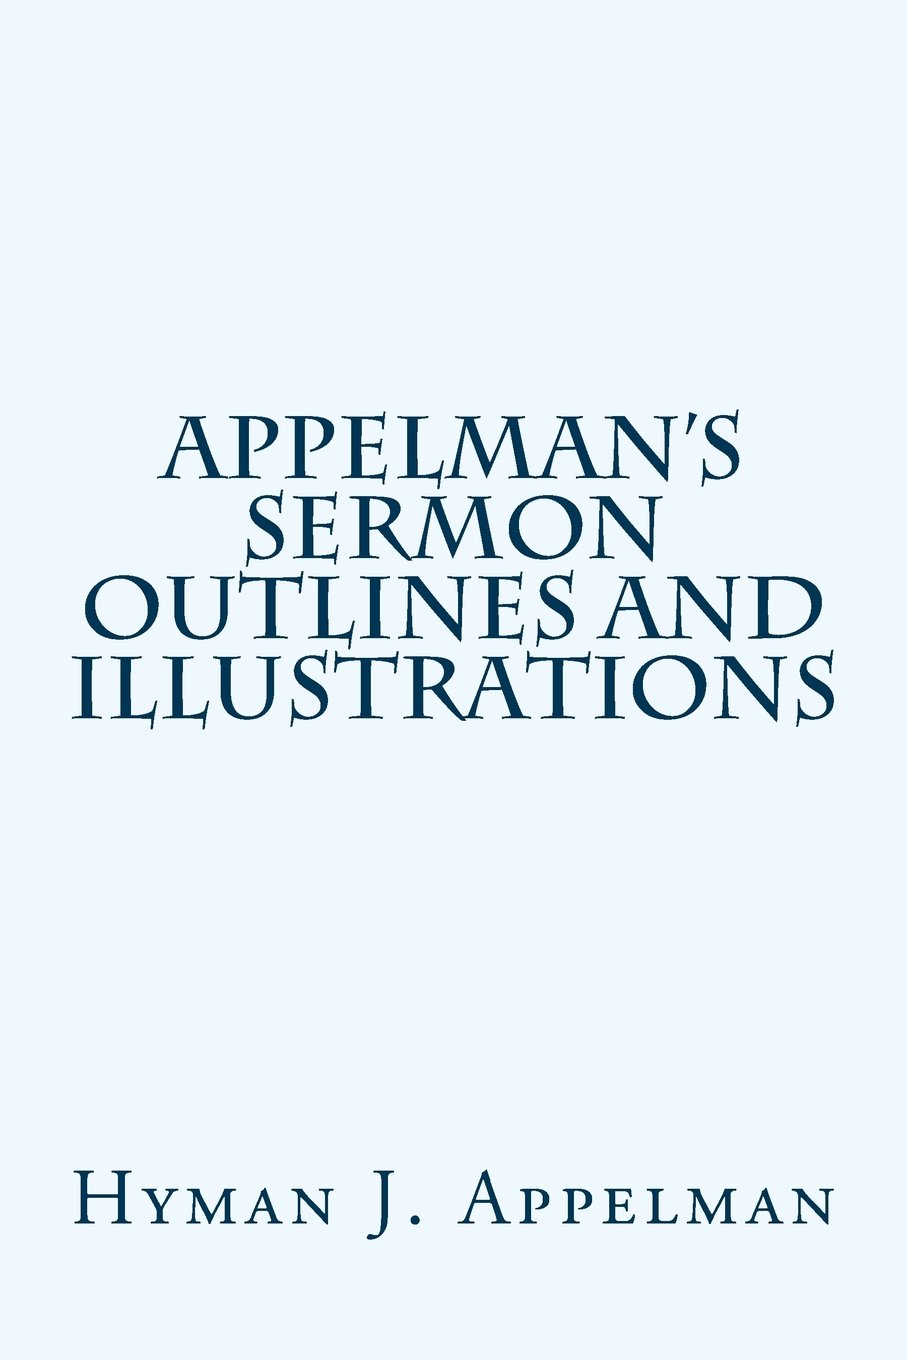 APPELMAN'S Sermon Outlines and Illustrations by Hyman Appelman